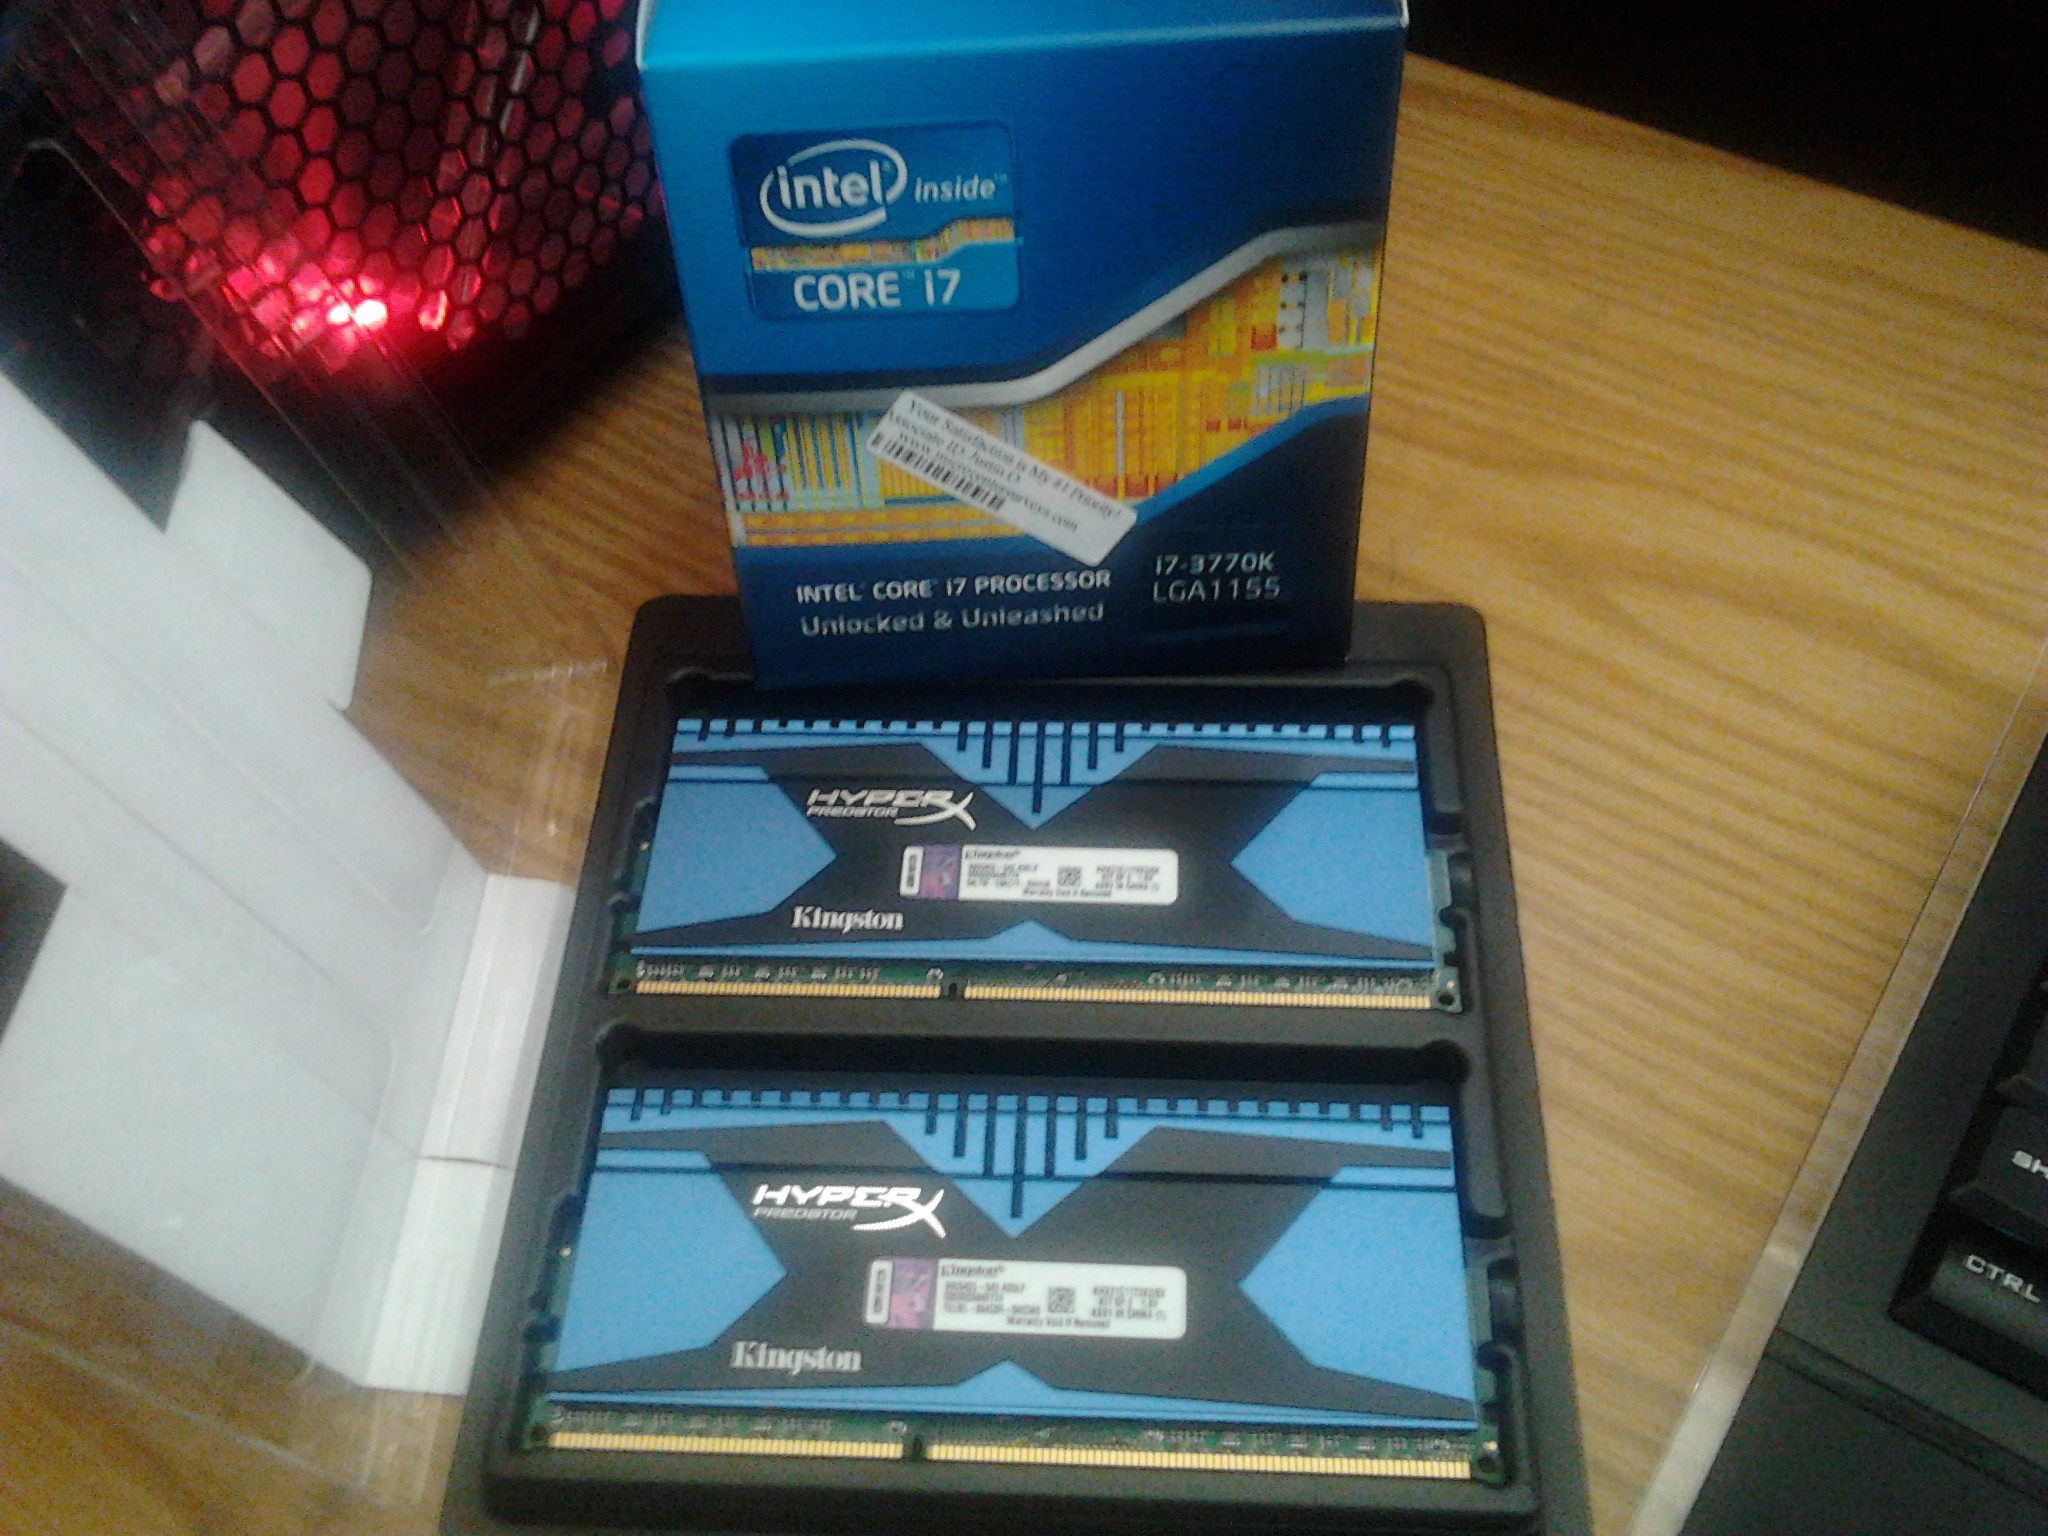 3rd 3770K & 8GB of Hyper X Predator 2133 to play with!